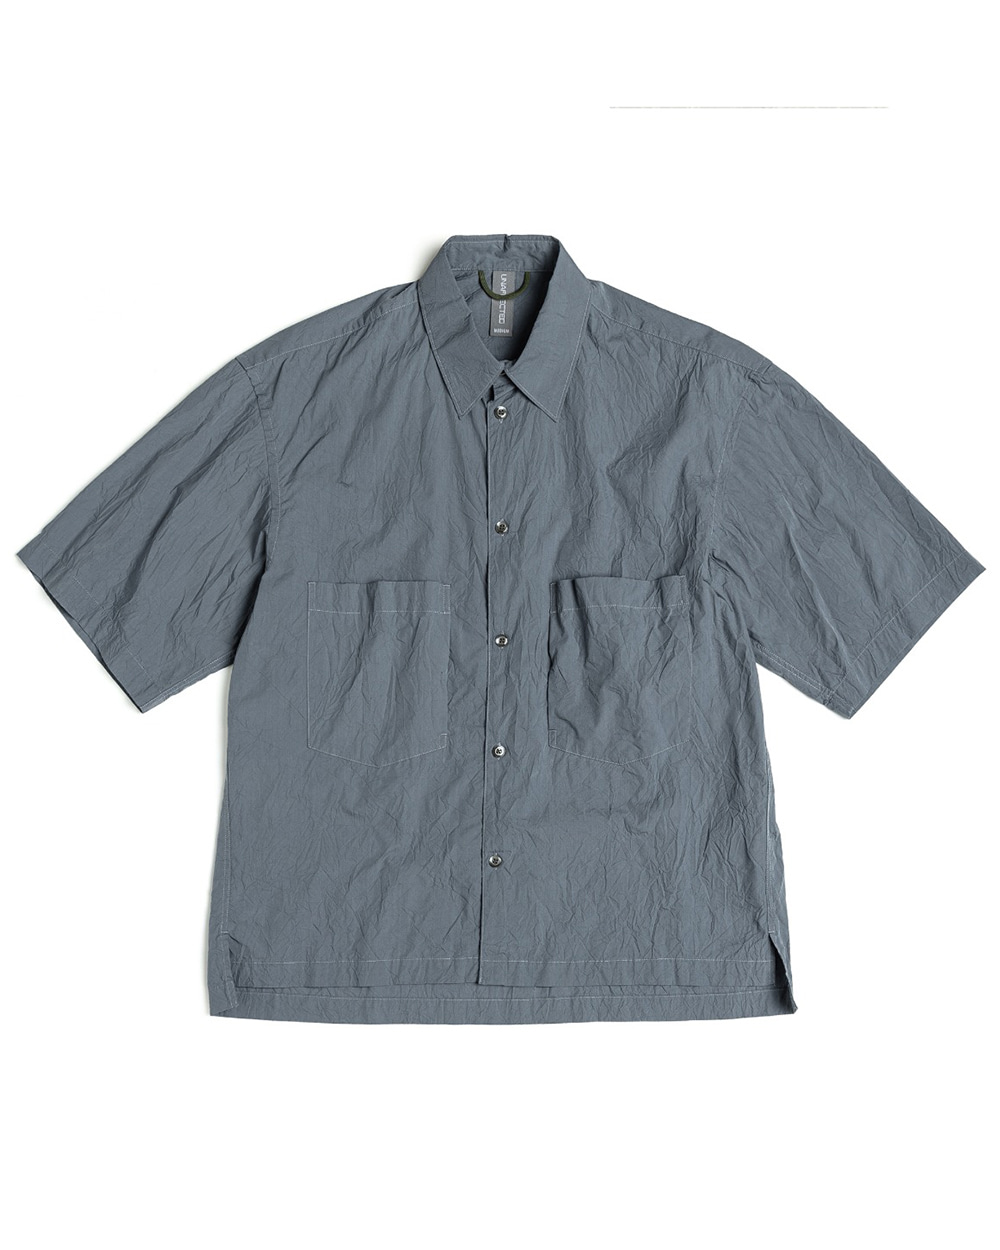 언어펙티드 OVERSIZED HALF SHIRT (Charcoal blue)